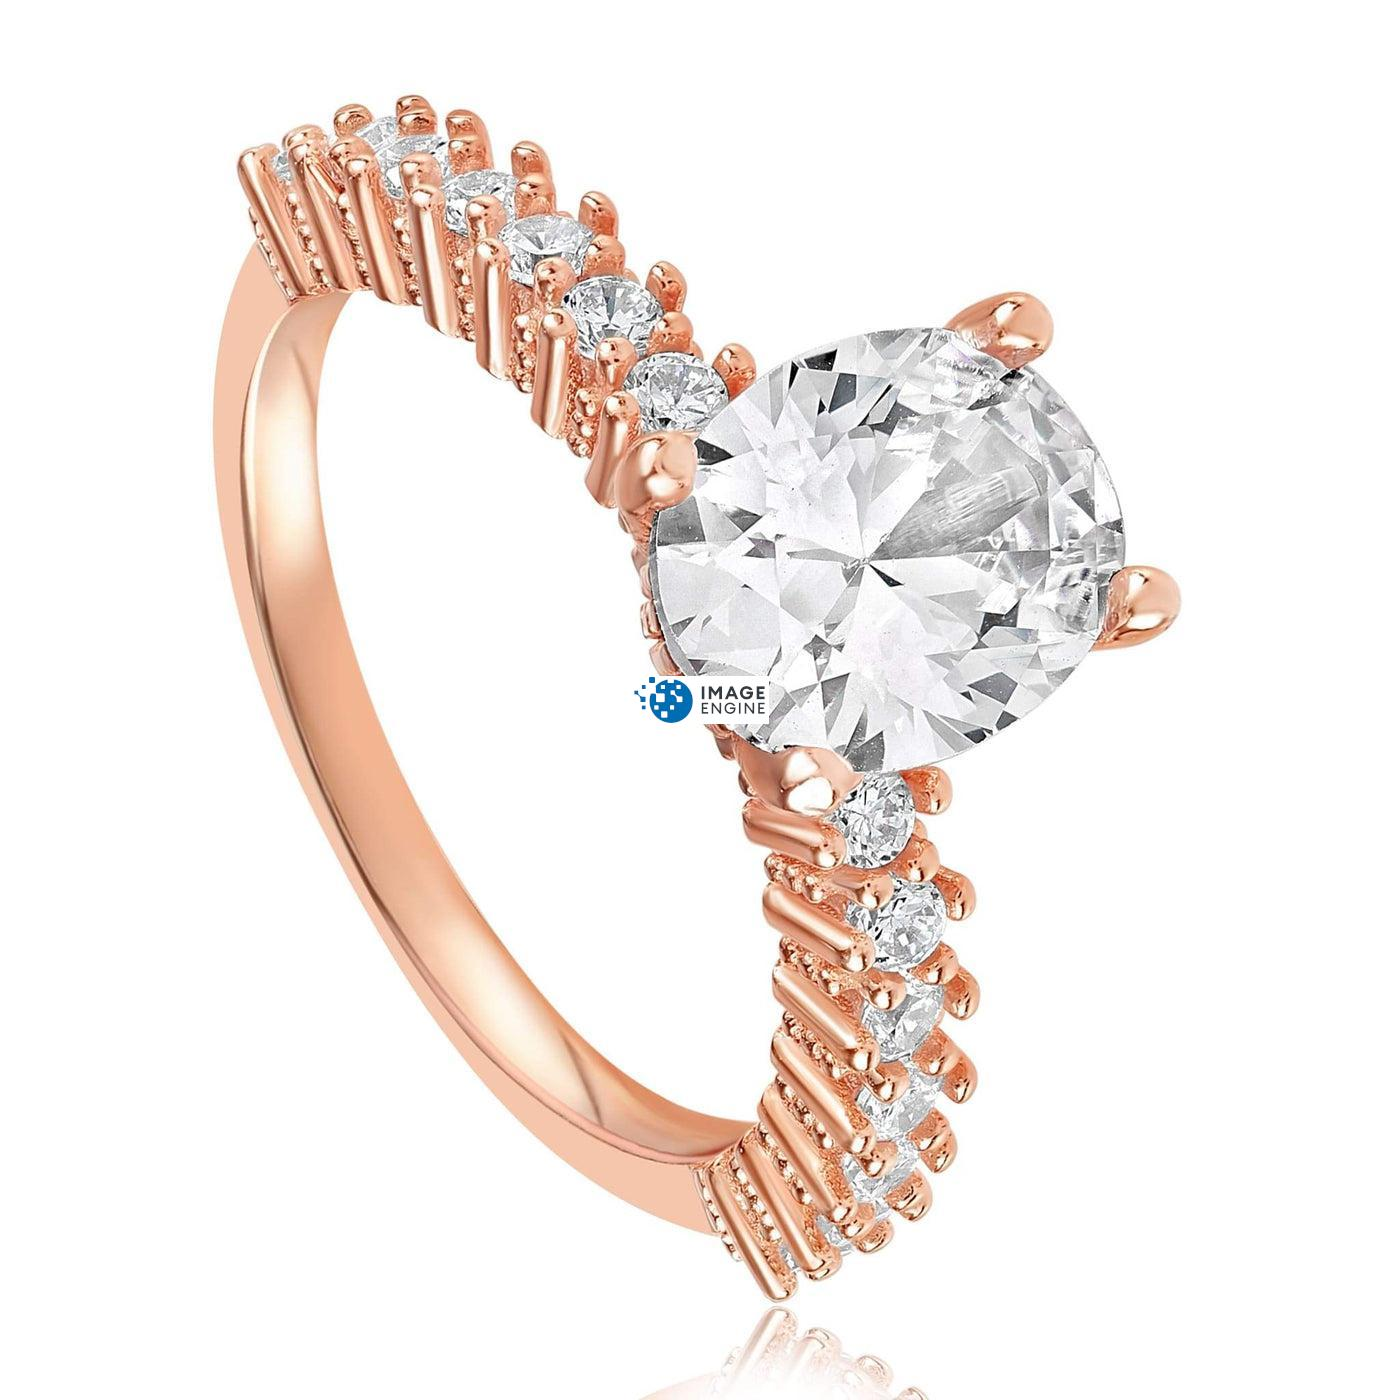 Cara Zirconia Ring - Three Quarter View - 18K Rose Gold Vermeil